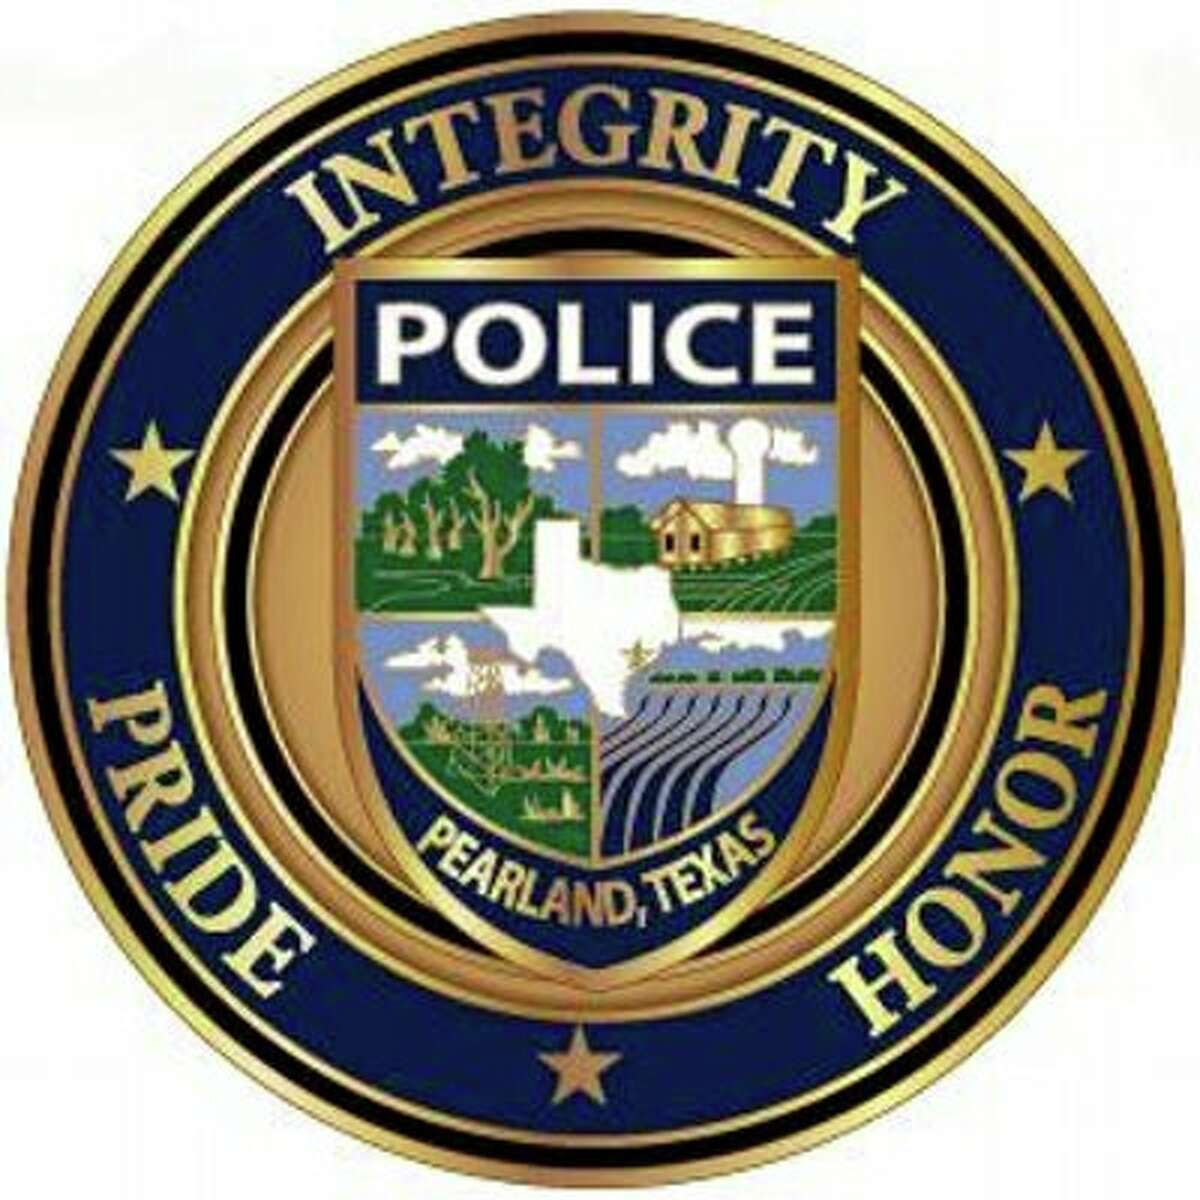 Pearland Police Department Where: 2555 Cullen Parkway, Pearland. Office hours: 7:30 a.m.-5:30 p.m., Monday-Friday. Telephone: 281-997-4100. Online: Incident and accident reports are available at http://p2c.pearlandpd.com.